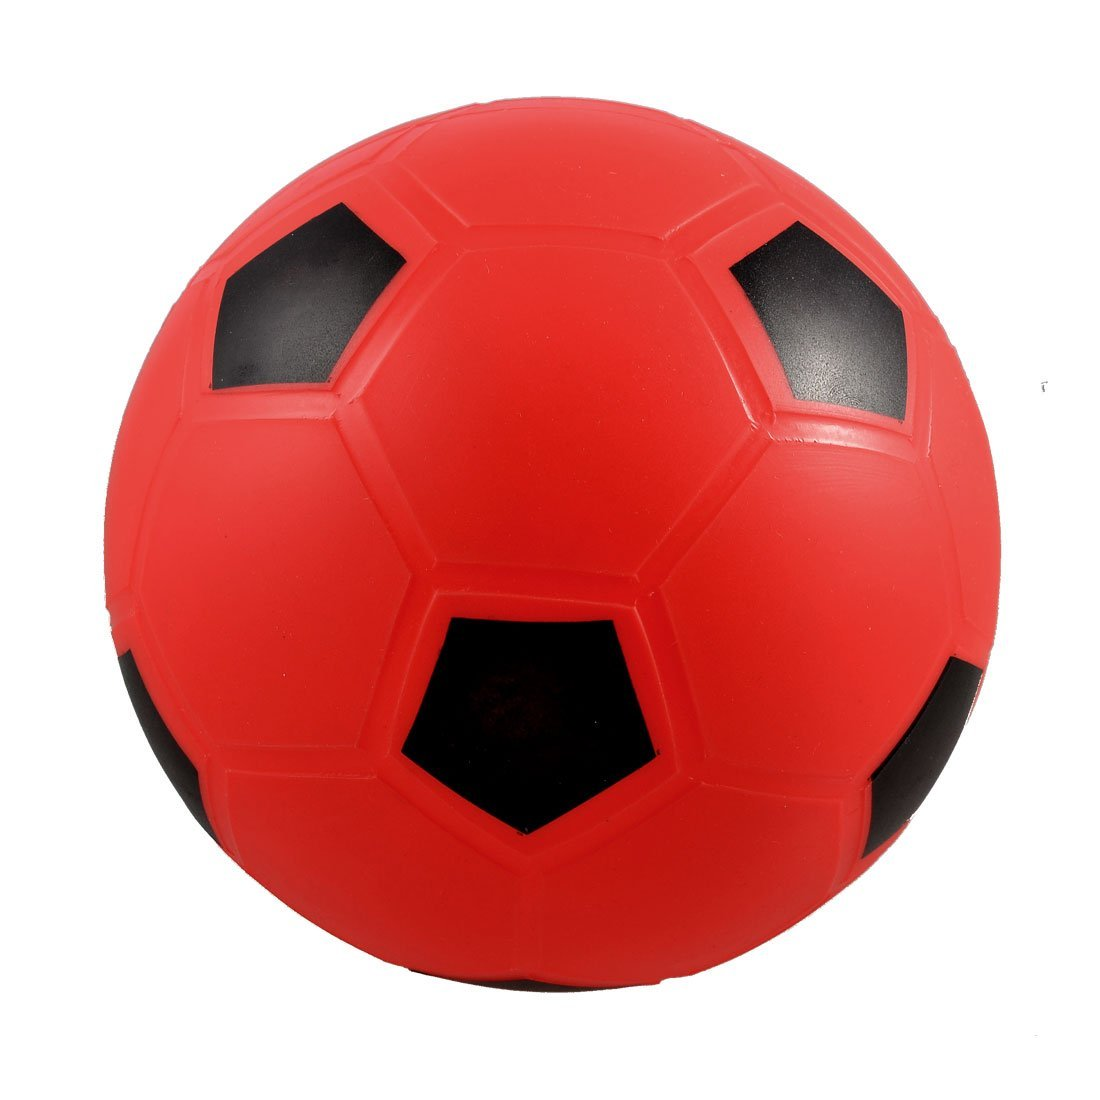 LCLL-SODIAL(R) 5.5 Inflatable Dia Red PVC Football Soccer Toy For Children Kids